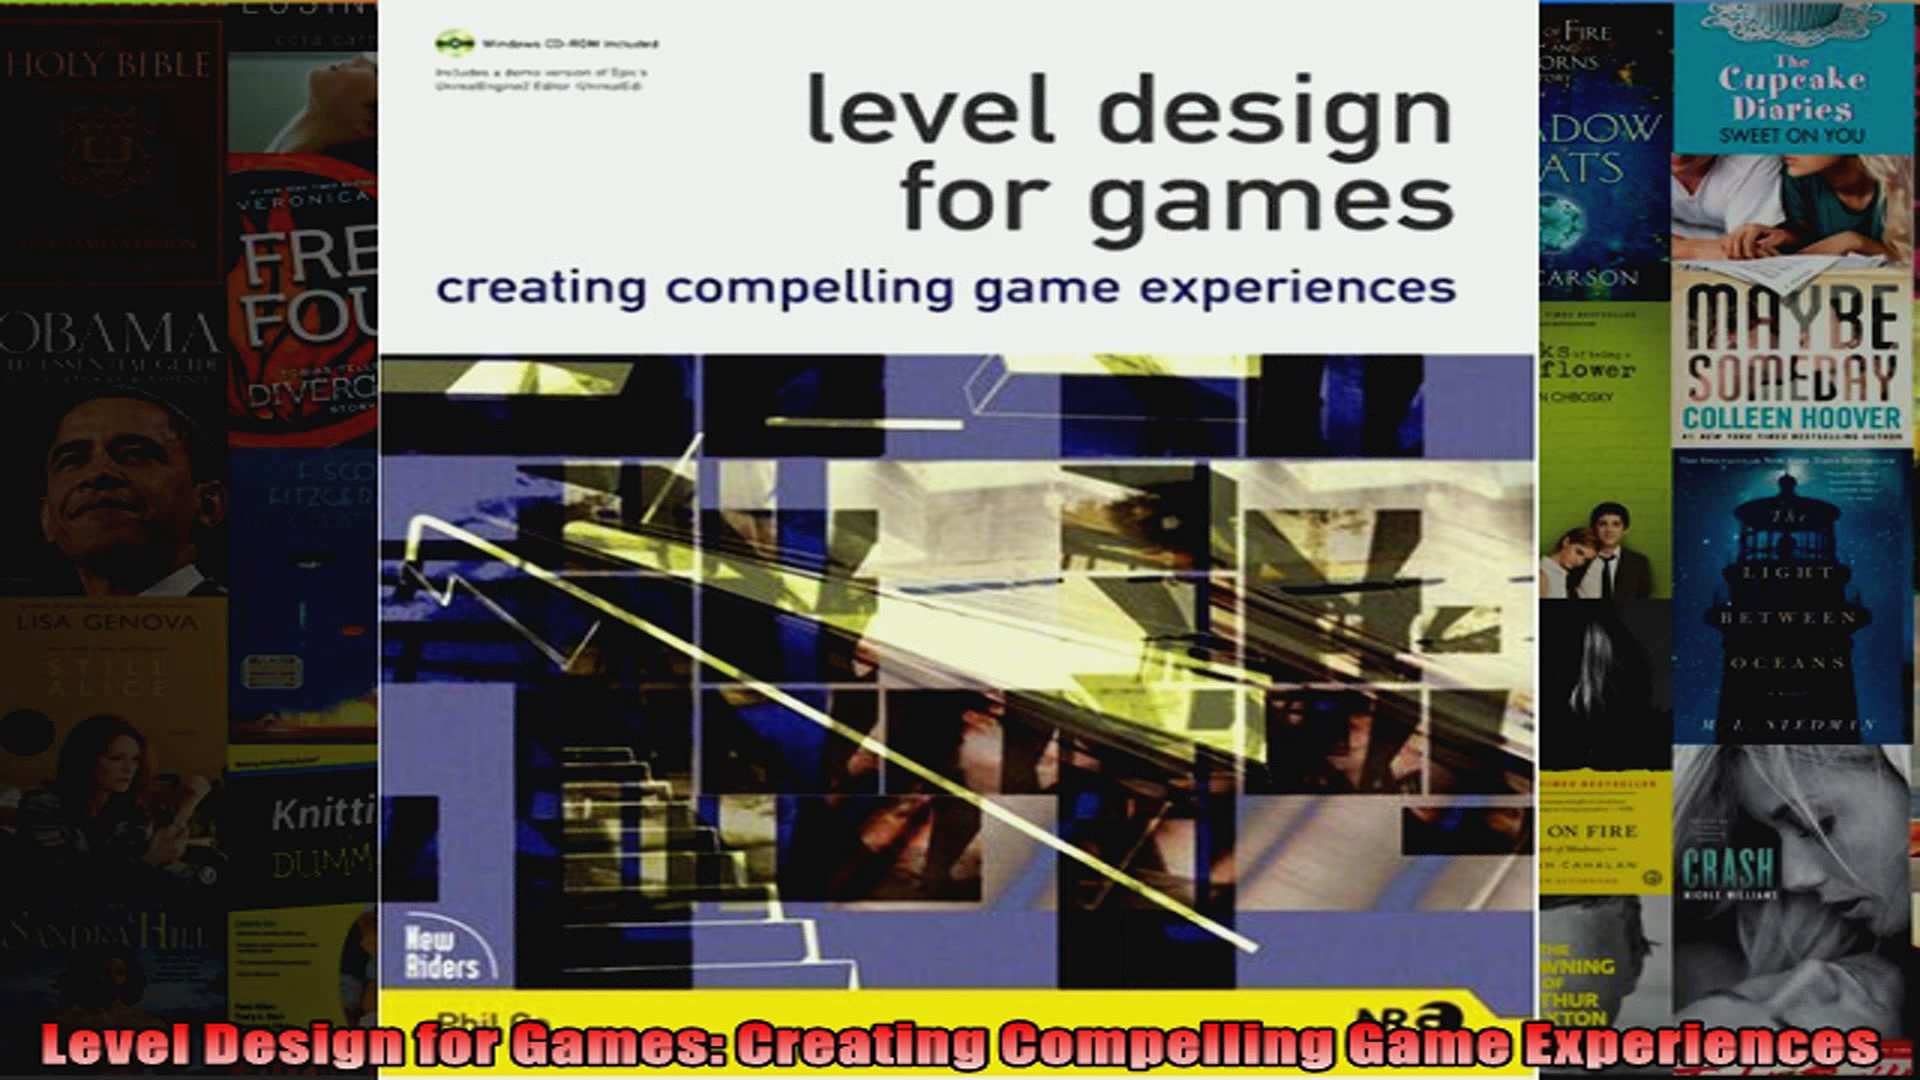 Level Design for Games Creating Compelling Game Experiences